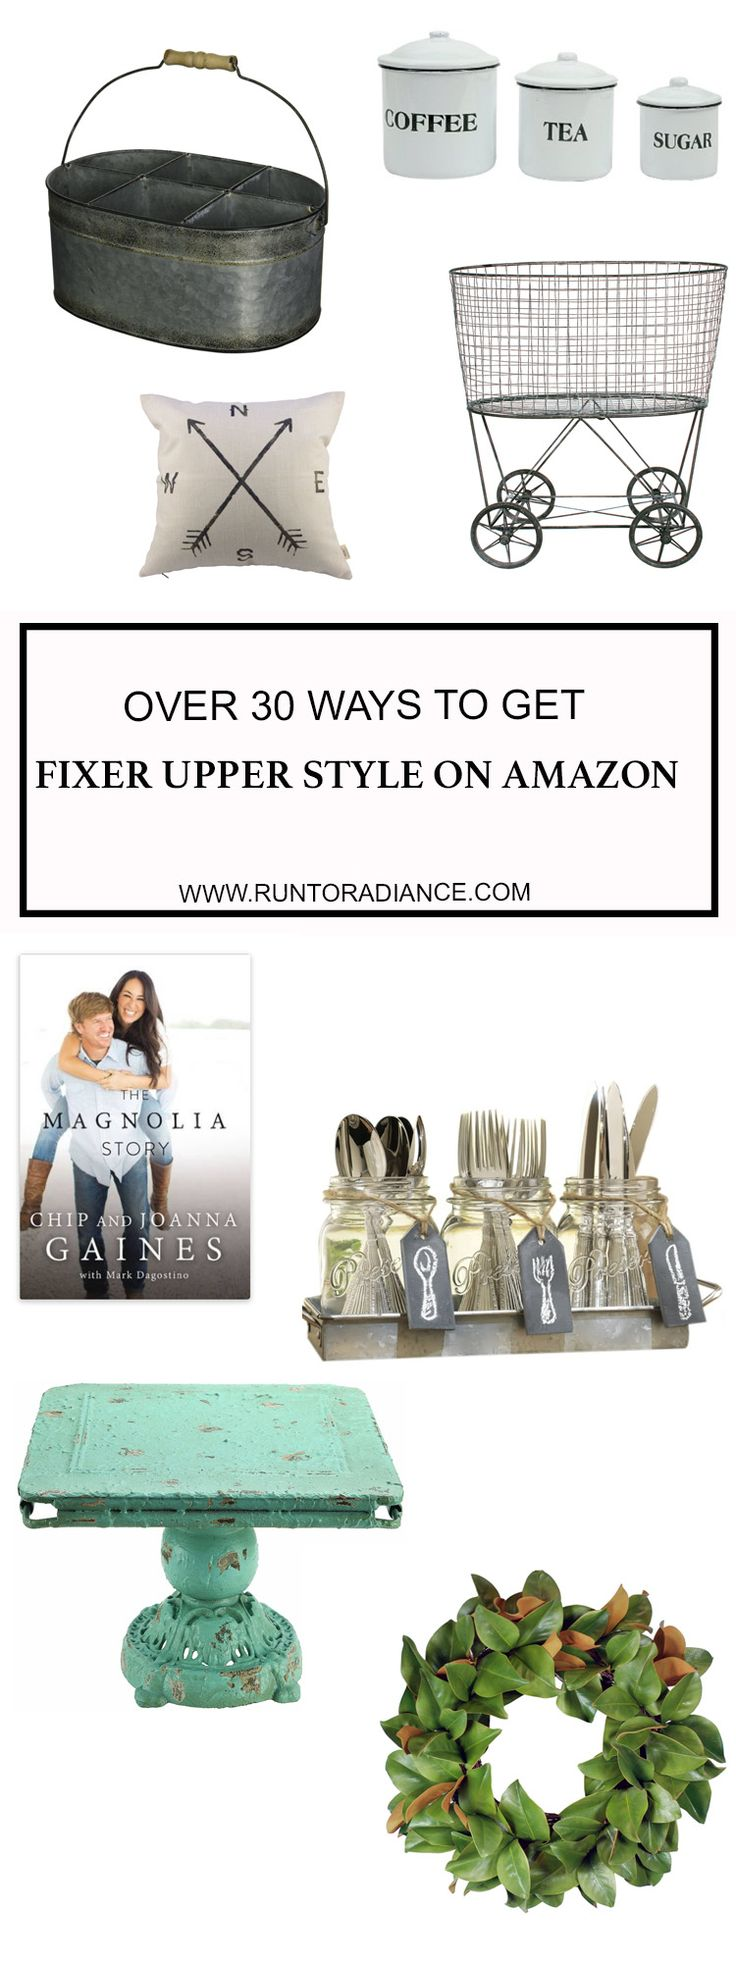 I love the show Fixer Upper, and it's so easy to get the Fixer Upper look on my favorite shopping site, Amazon.com. Fixer Upper on Amazon - Hooray!